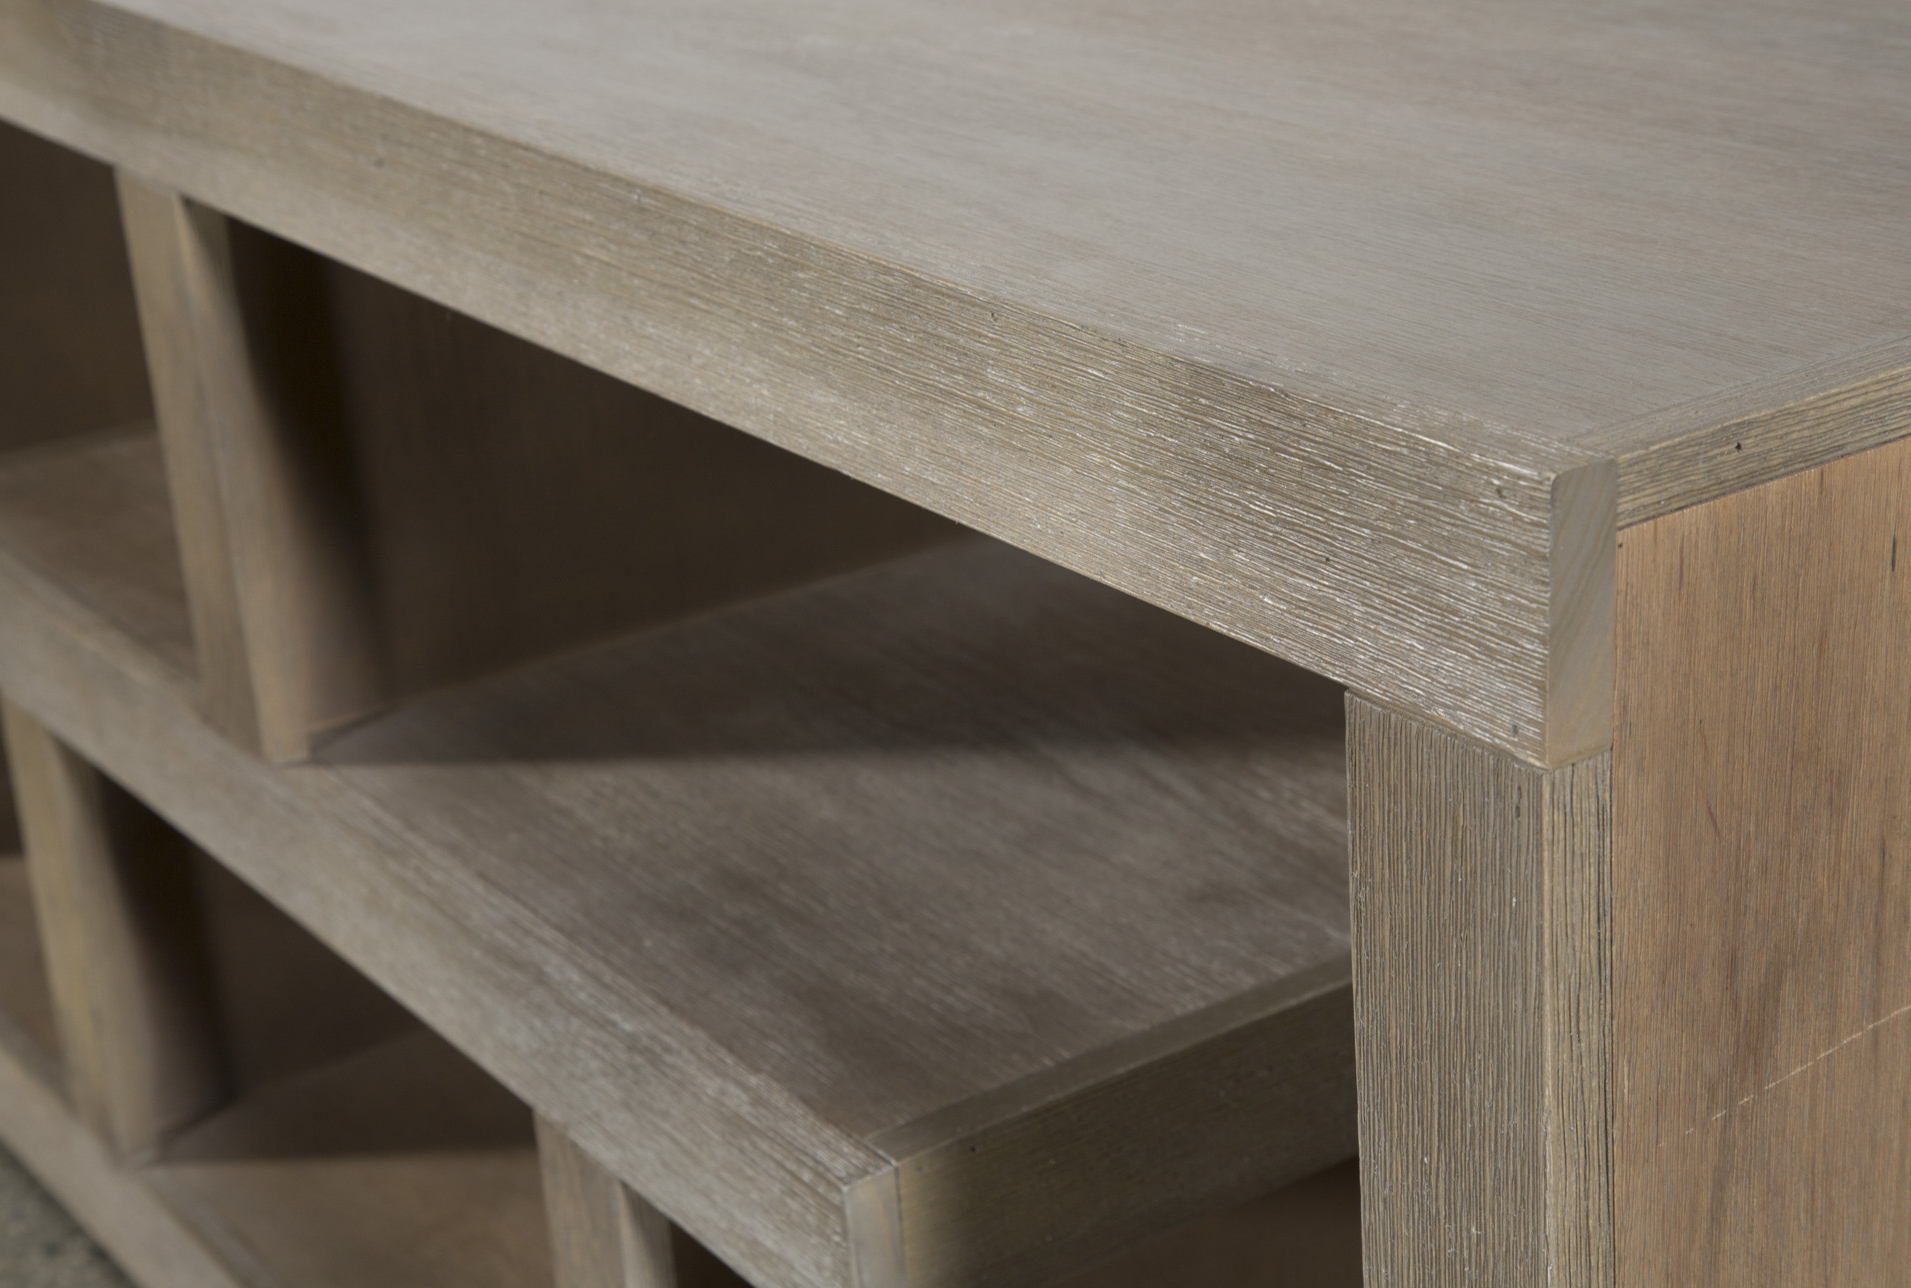 Walton Grey 60 Inch Tv Stand In 2018 | Products | Pinterest | Tvs With Regard To Walton Grey 60 Inch Tv Stands (View 4 of 20)